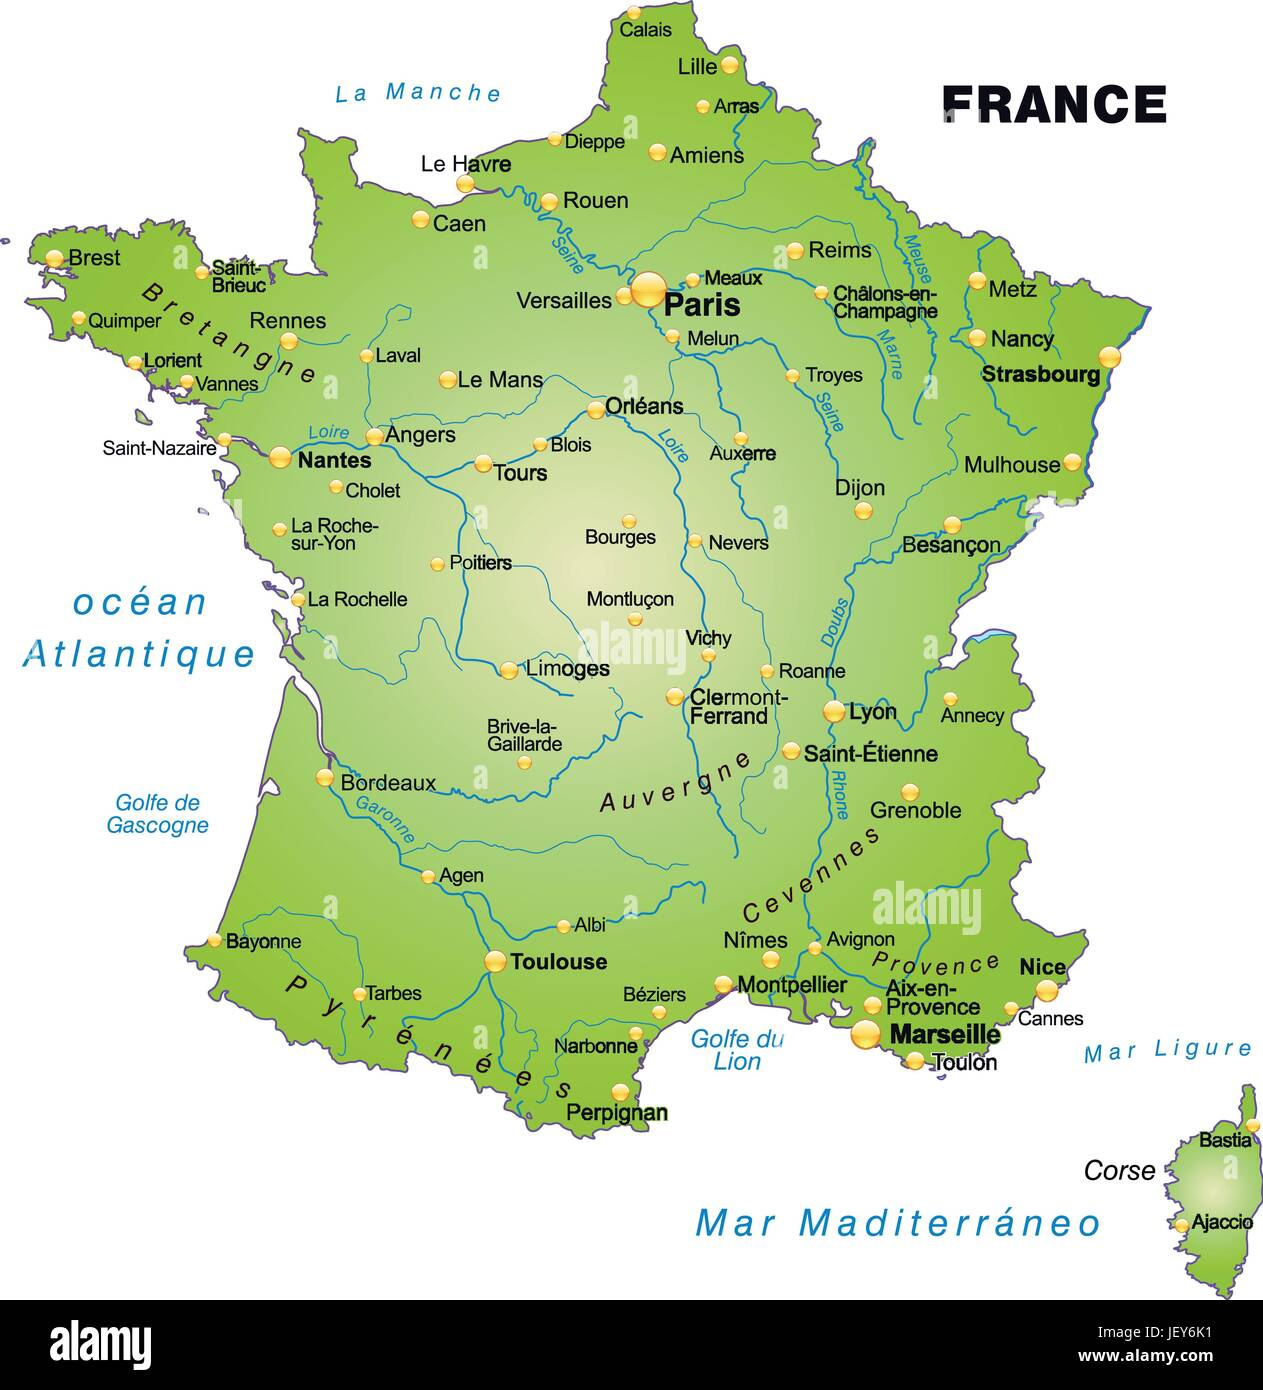 France card outline borders atlas map of the world map stock france card outline borders atlas map of the world map frankreichkarte gumiabroncs Image collections